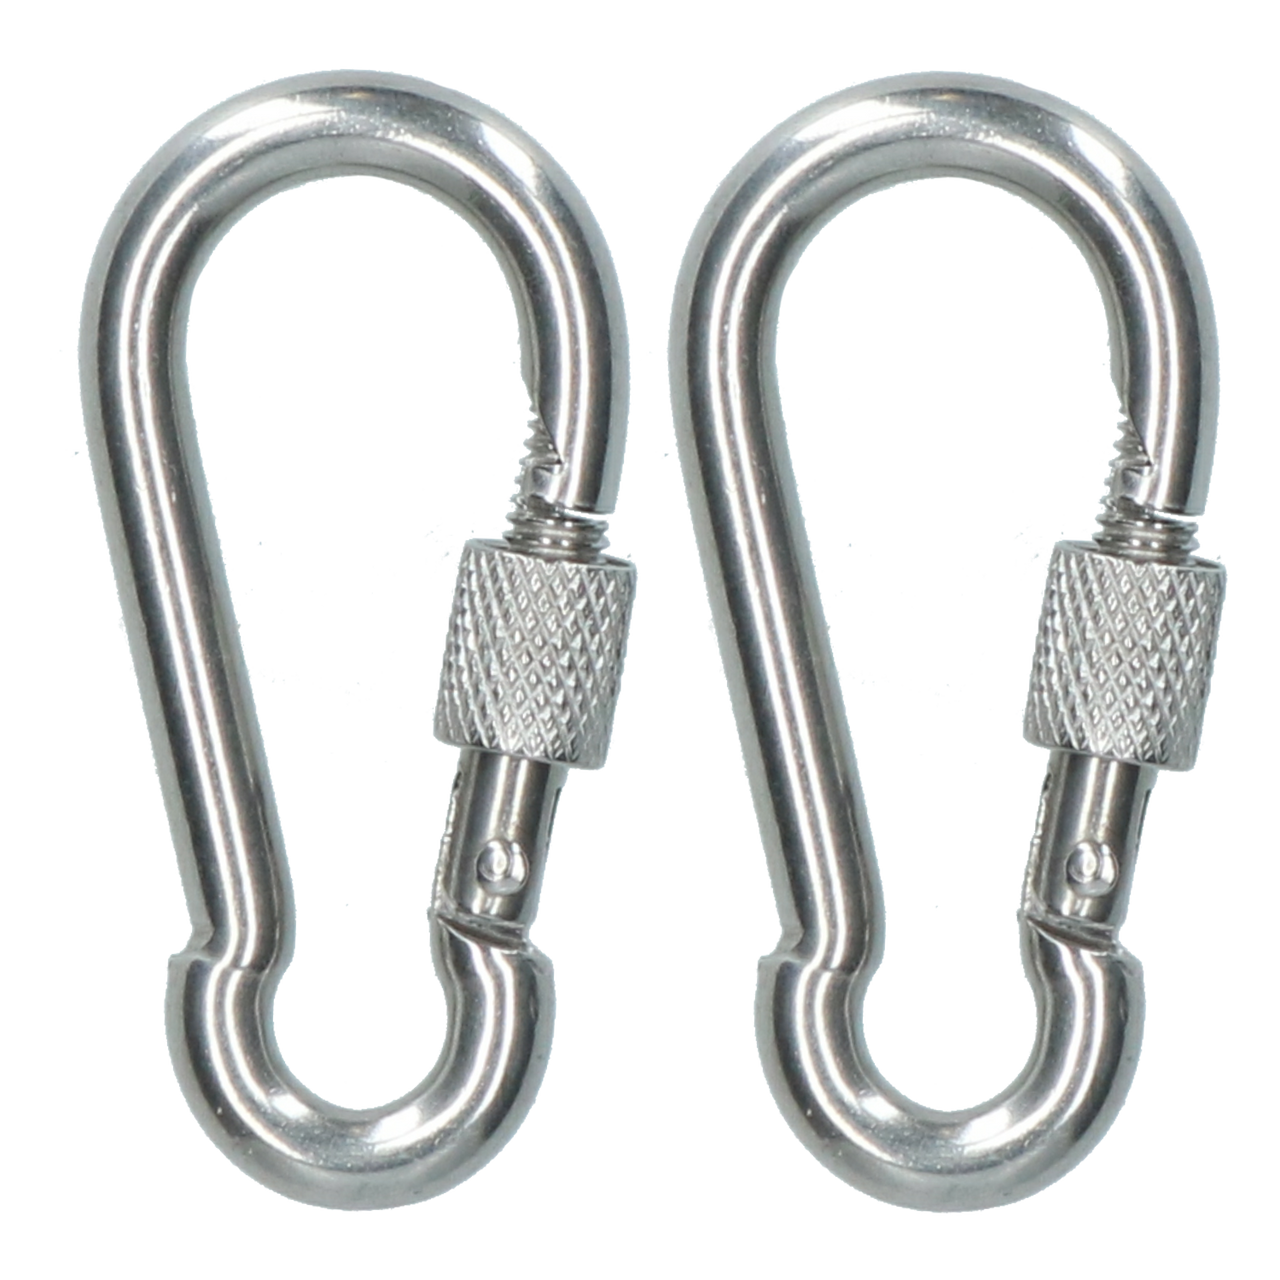 2 x Carabina Carbine Hook with Screw Gate 6mm MARINE GRADE Stainless Steel DK74